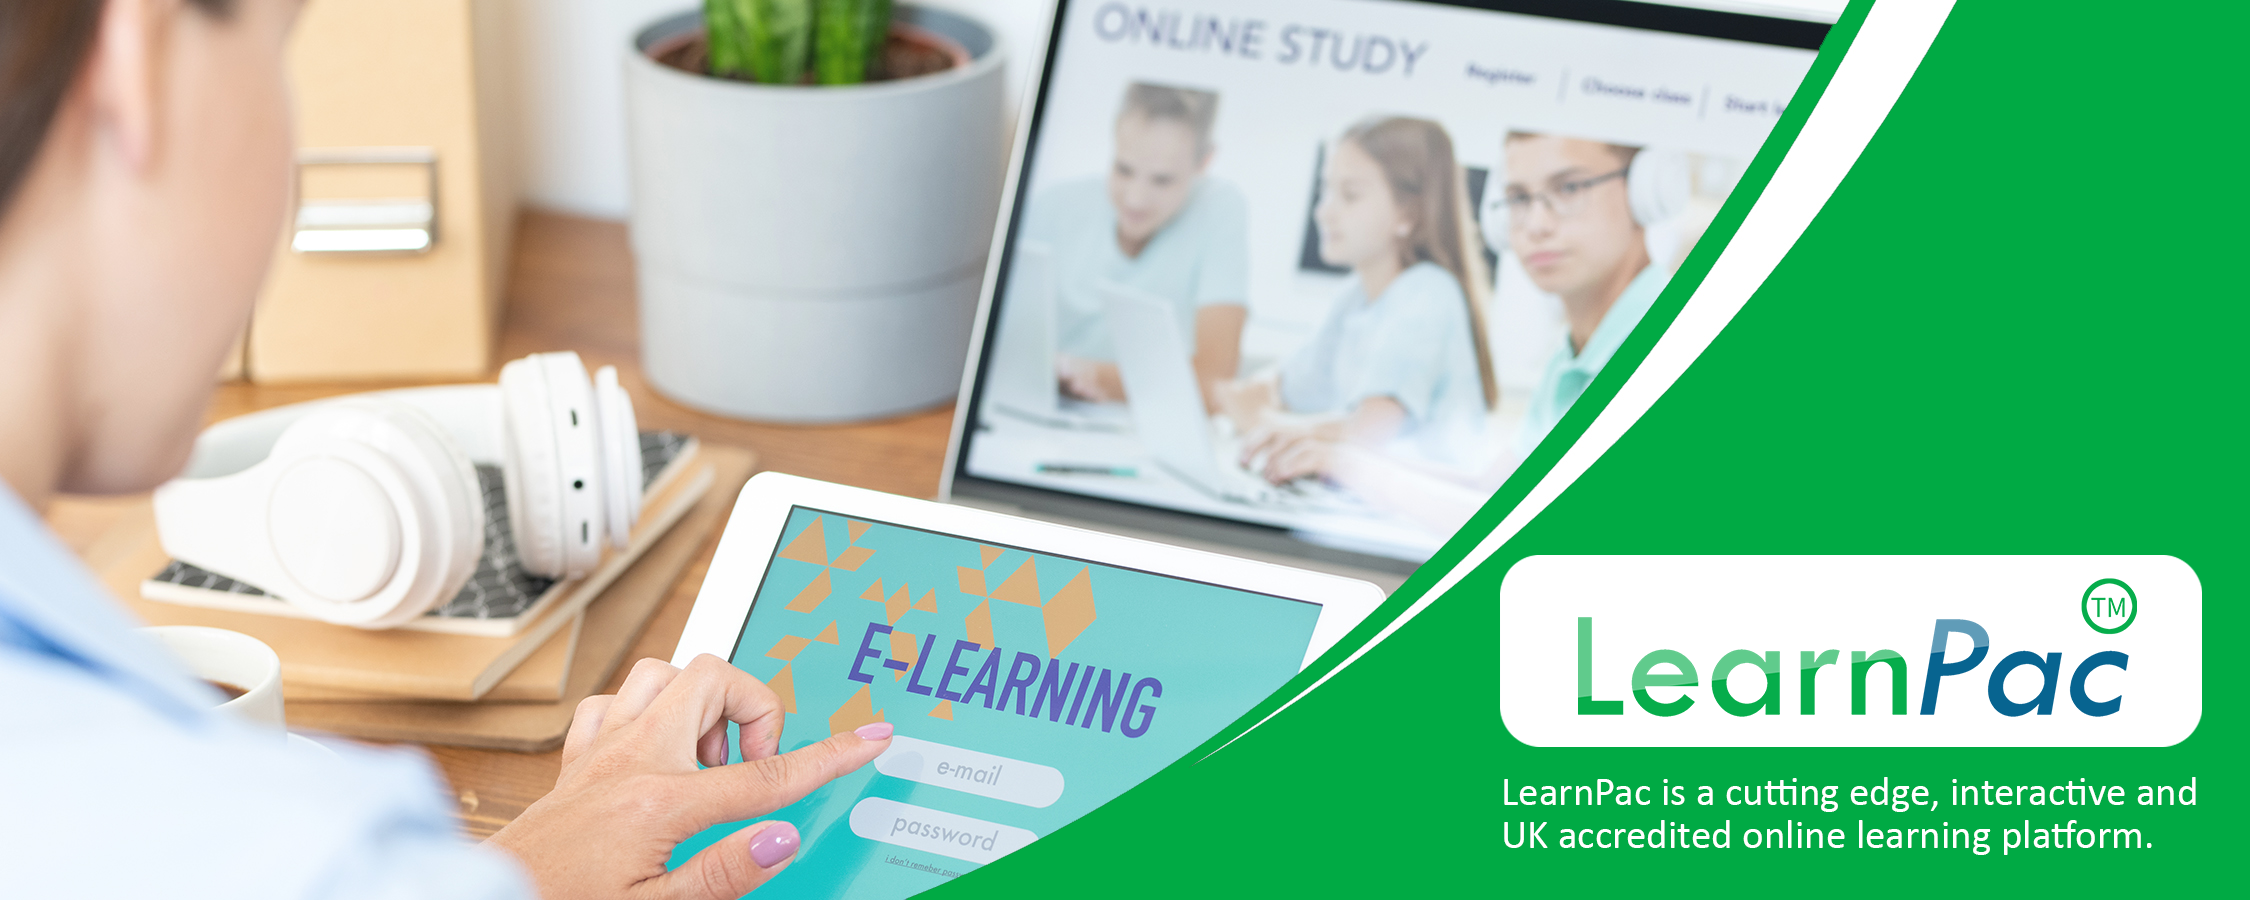 Diabetes Awareness - Online Learning Courses - E-Learning Courses - LearnPac Systems UK --